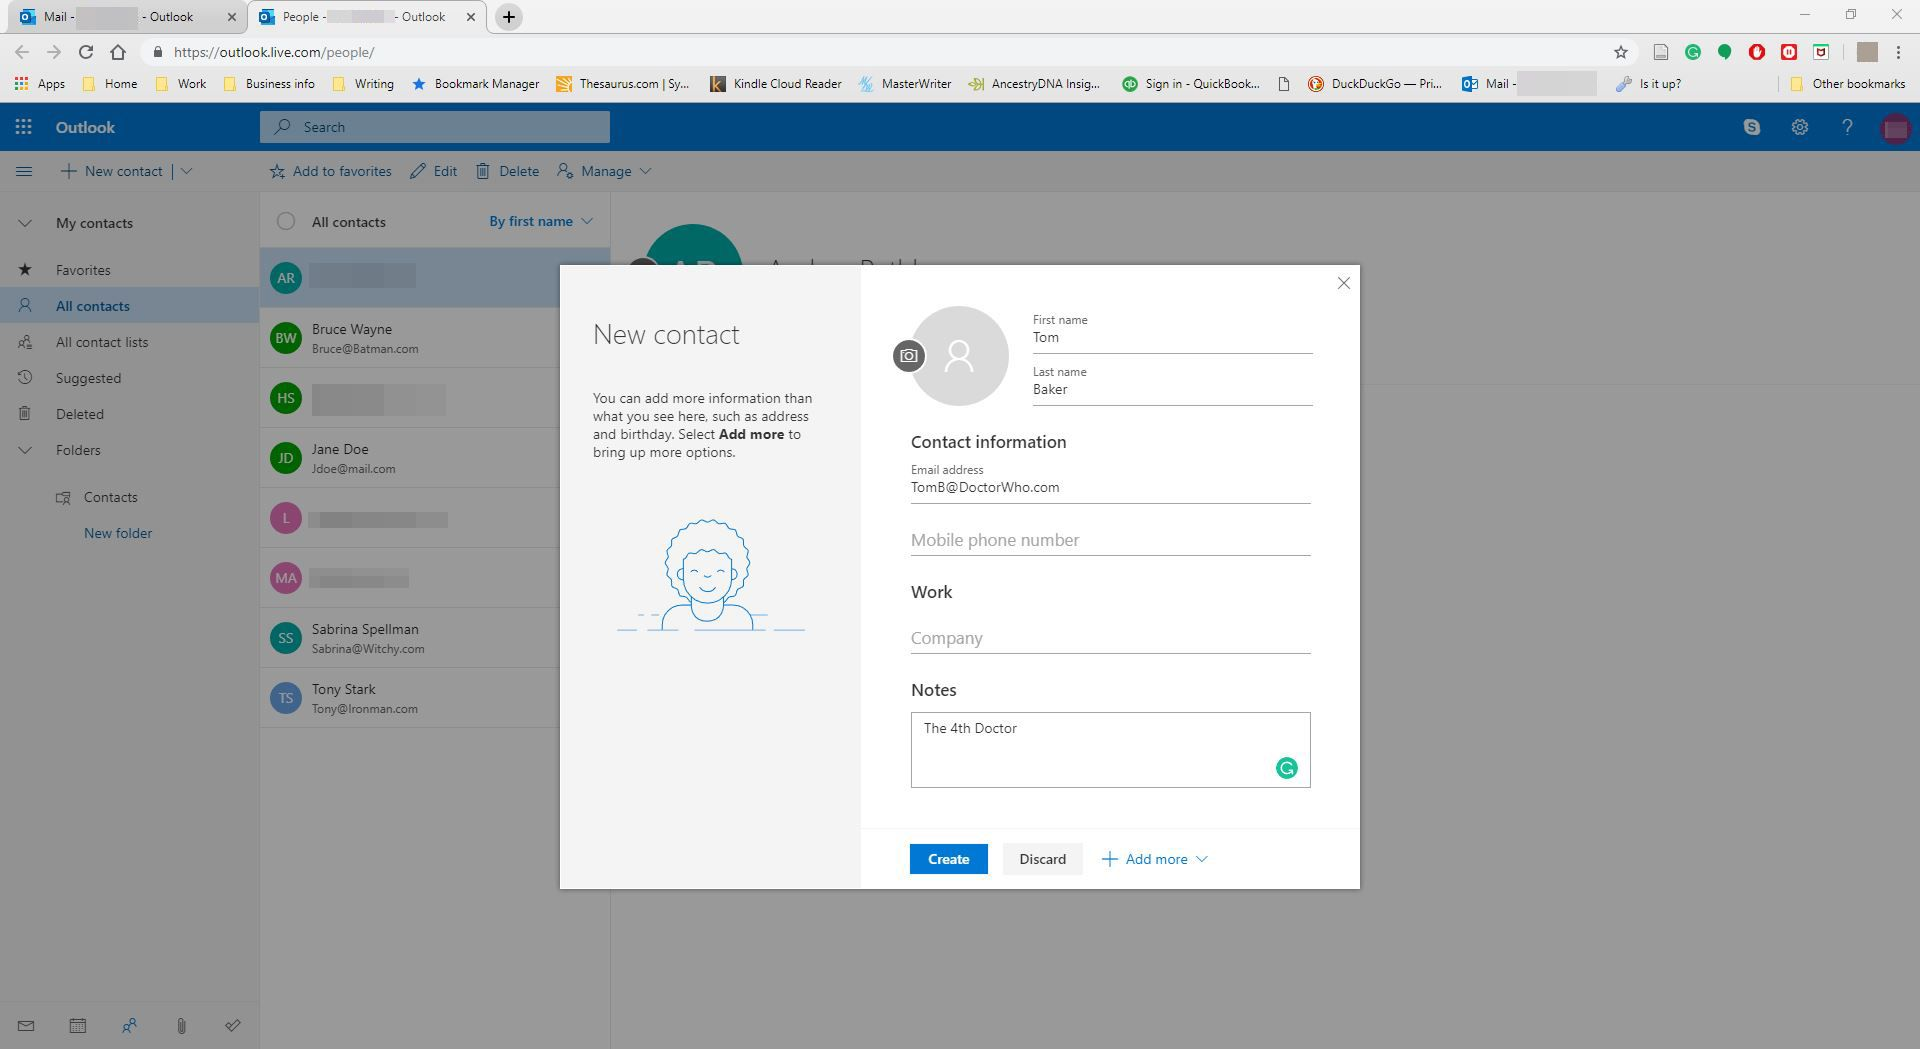 Entering data into a new contact in Outlook.com